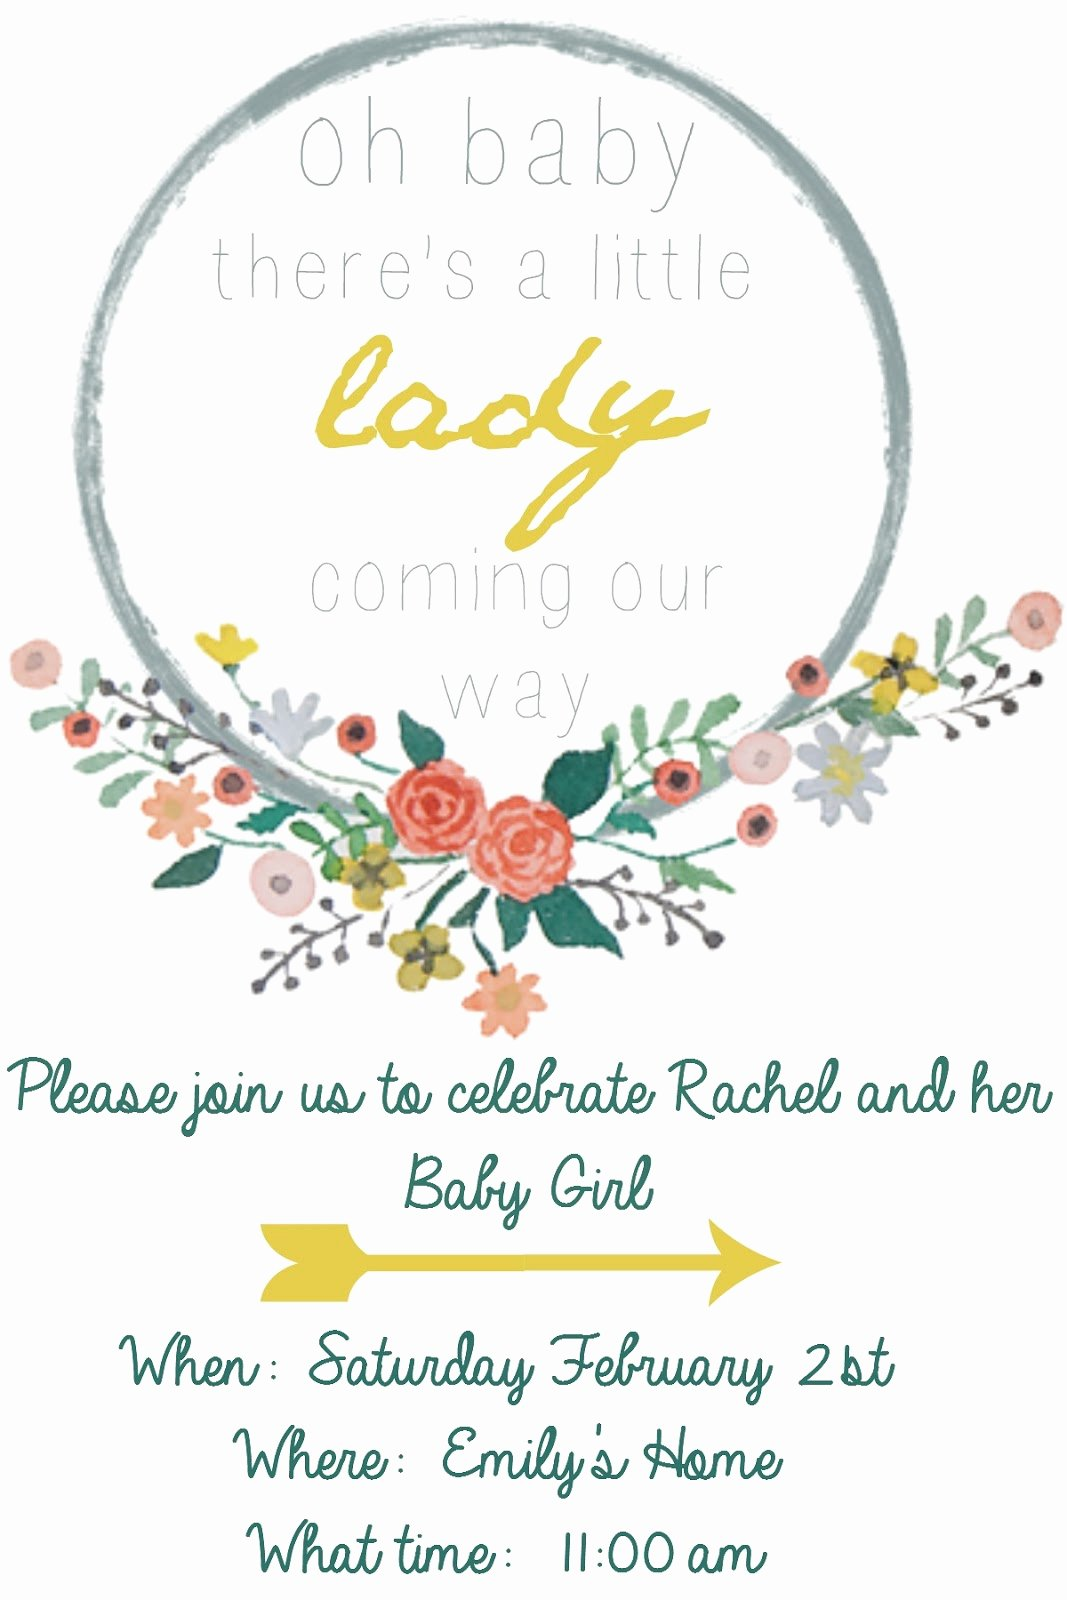 Free Baby Shower Invitation Templates Fresh Emmy In Her Element Free Baby Shower Invitation Template